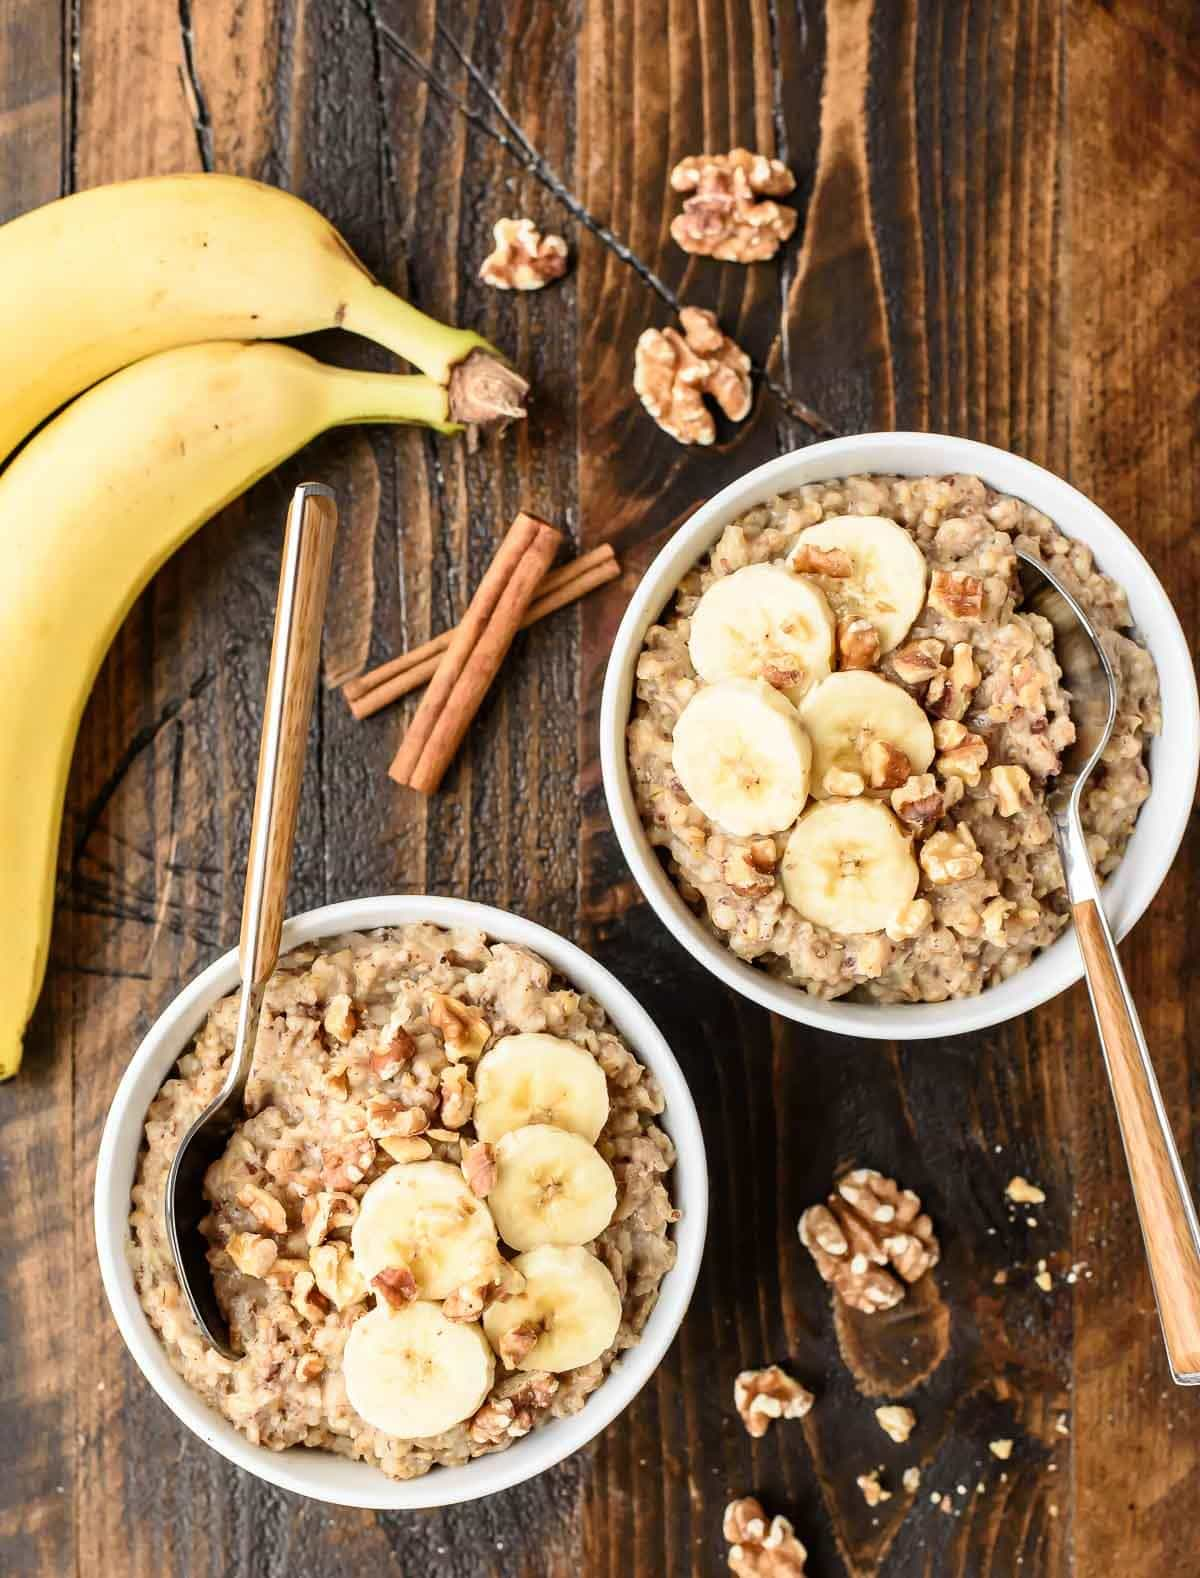 Slow Cooker Overnight Steel Cut Oats. Tastes like your favorite banana bread! You'll love waking up to a crock pot filled with this healthy banana oatmeal!